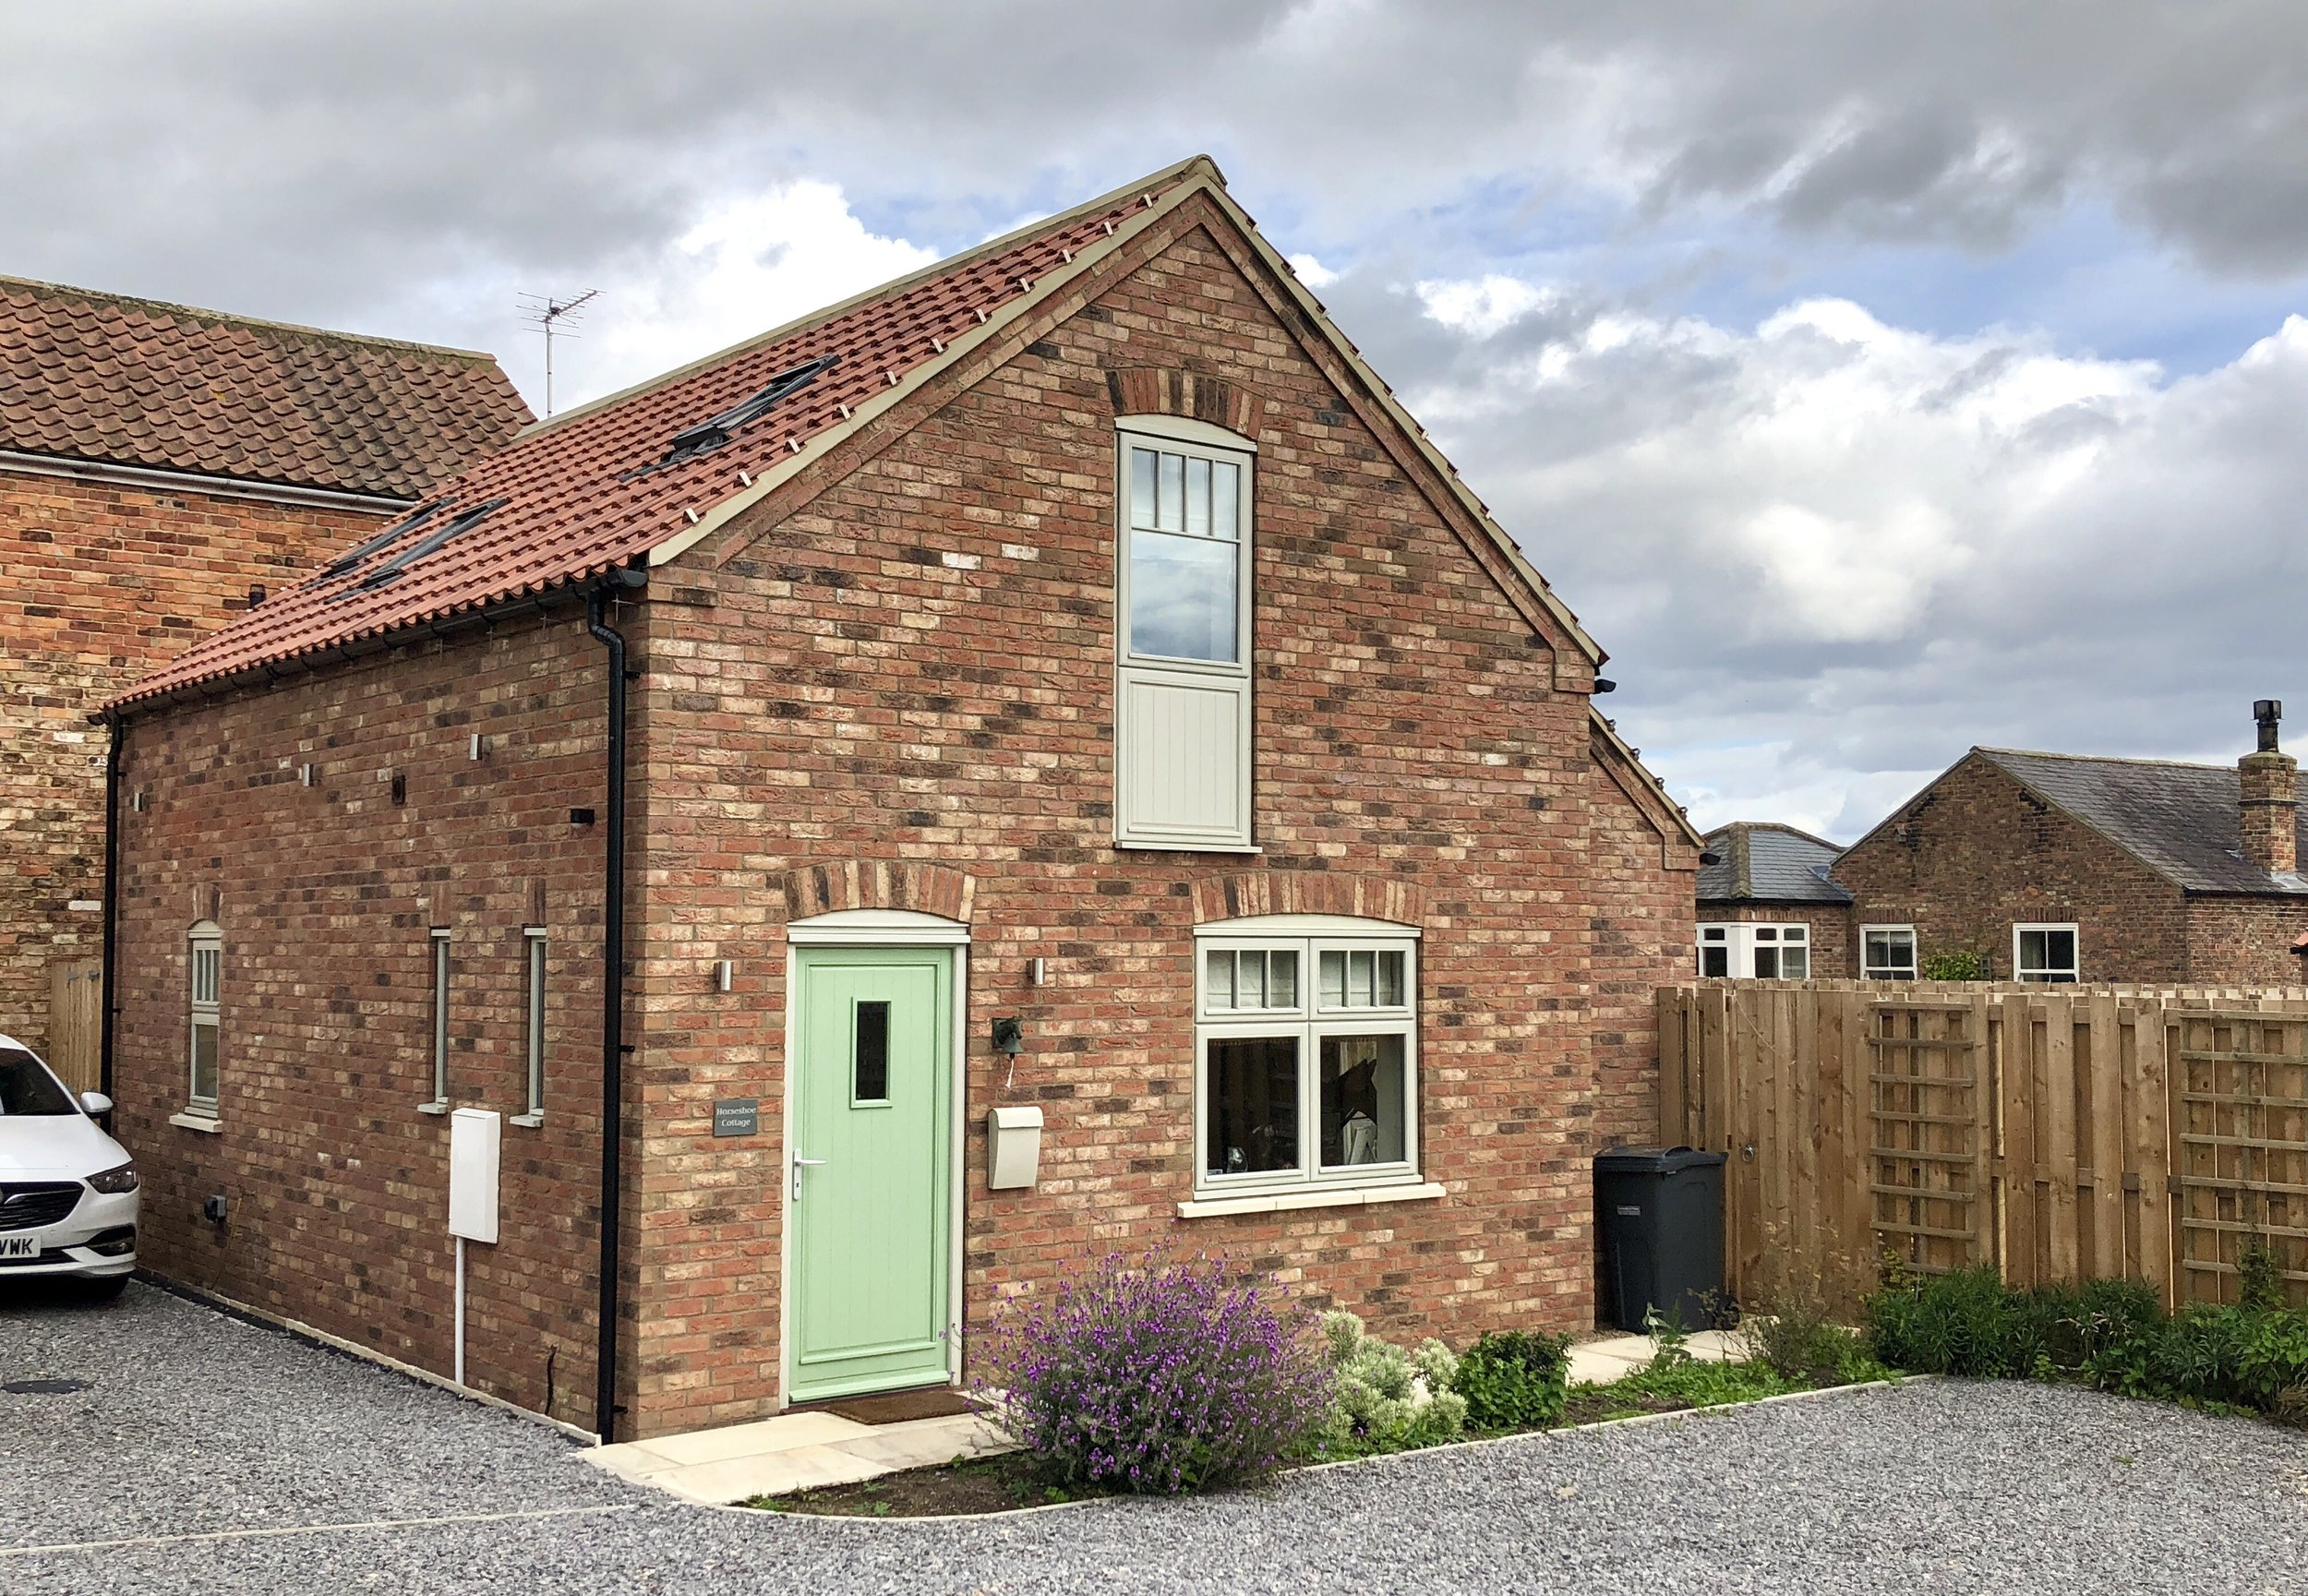 Horseshoe Cottage - Plot 2 - SoldA 2 bedroom cottage, with secluded south facing garden.